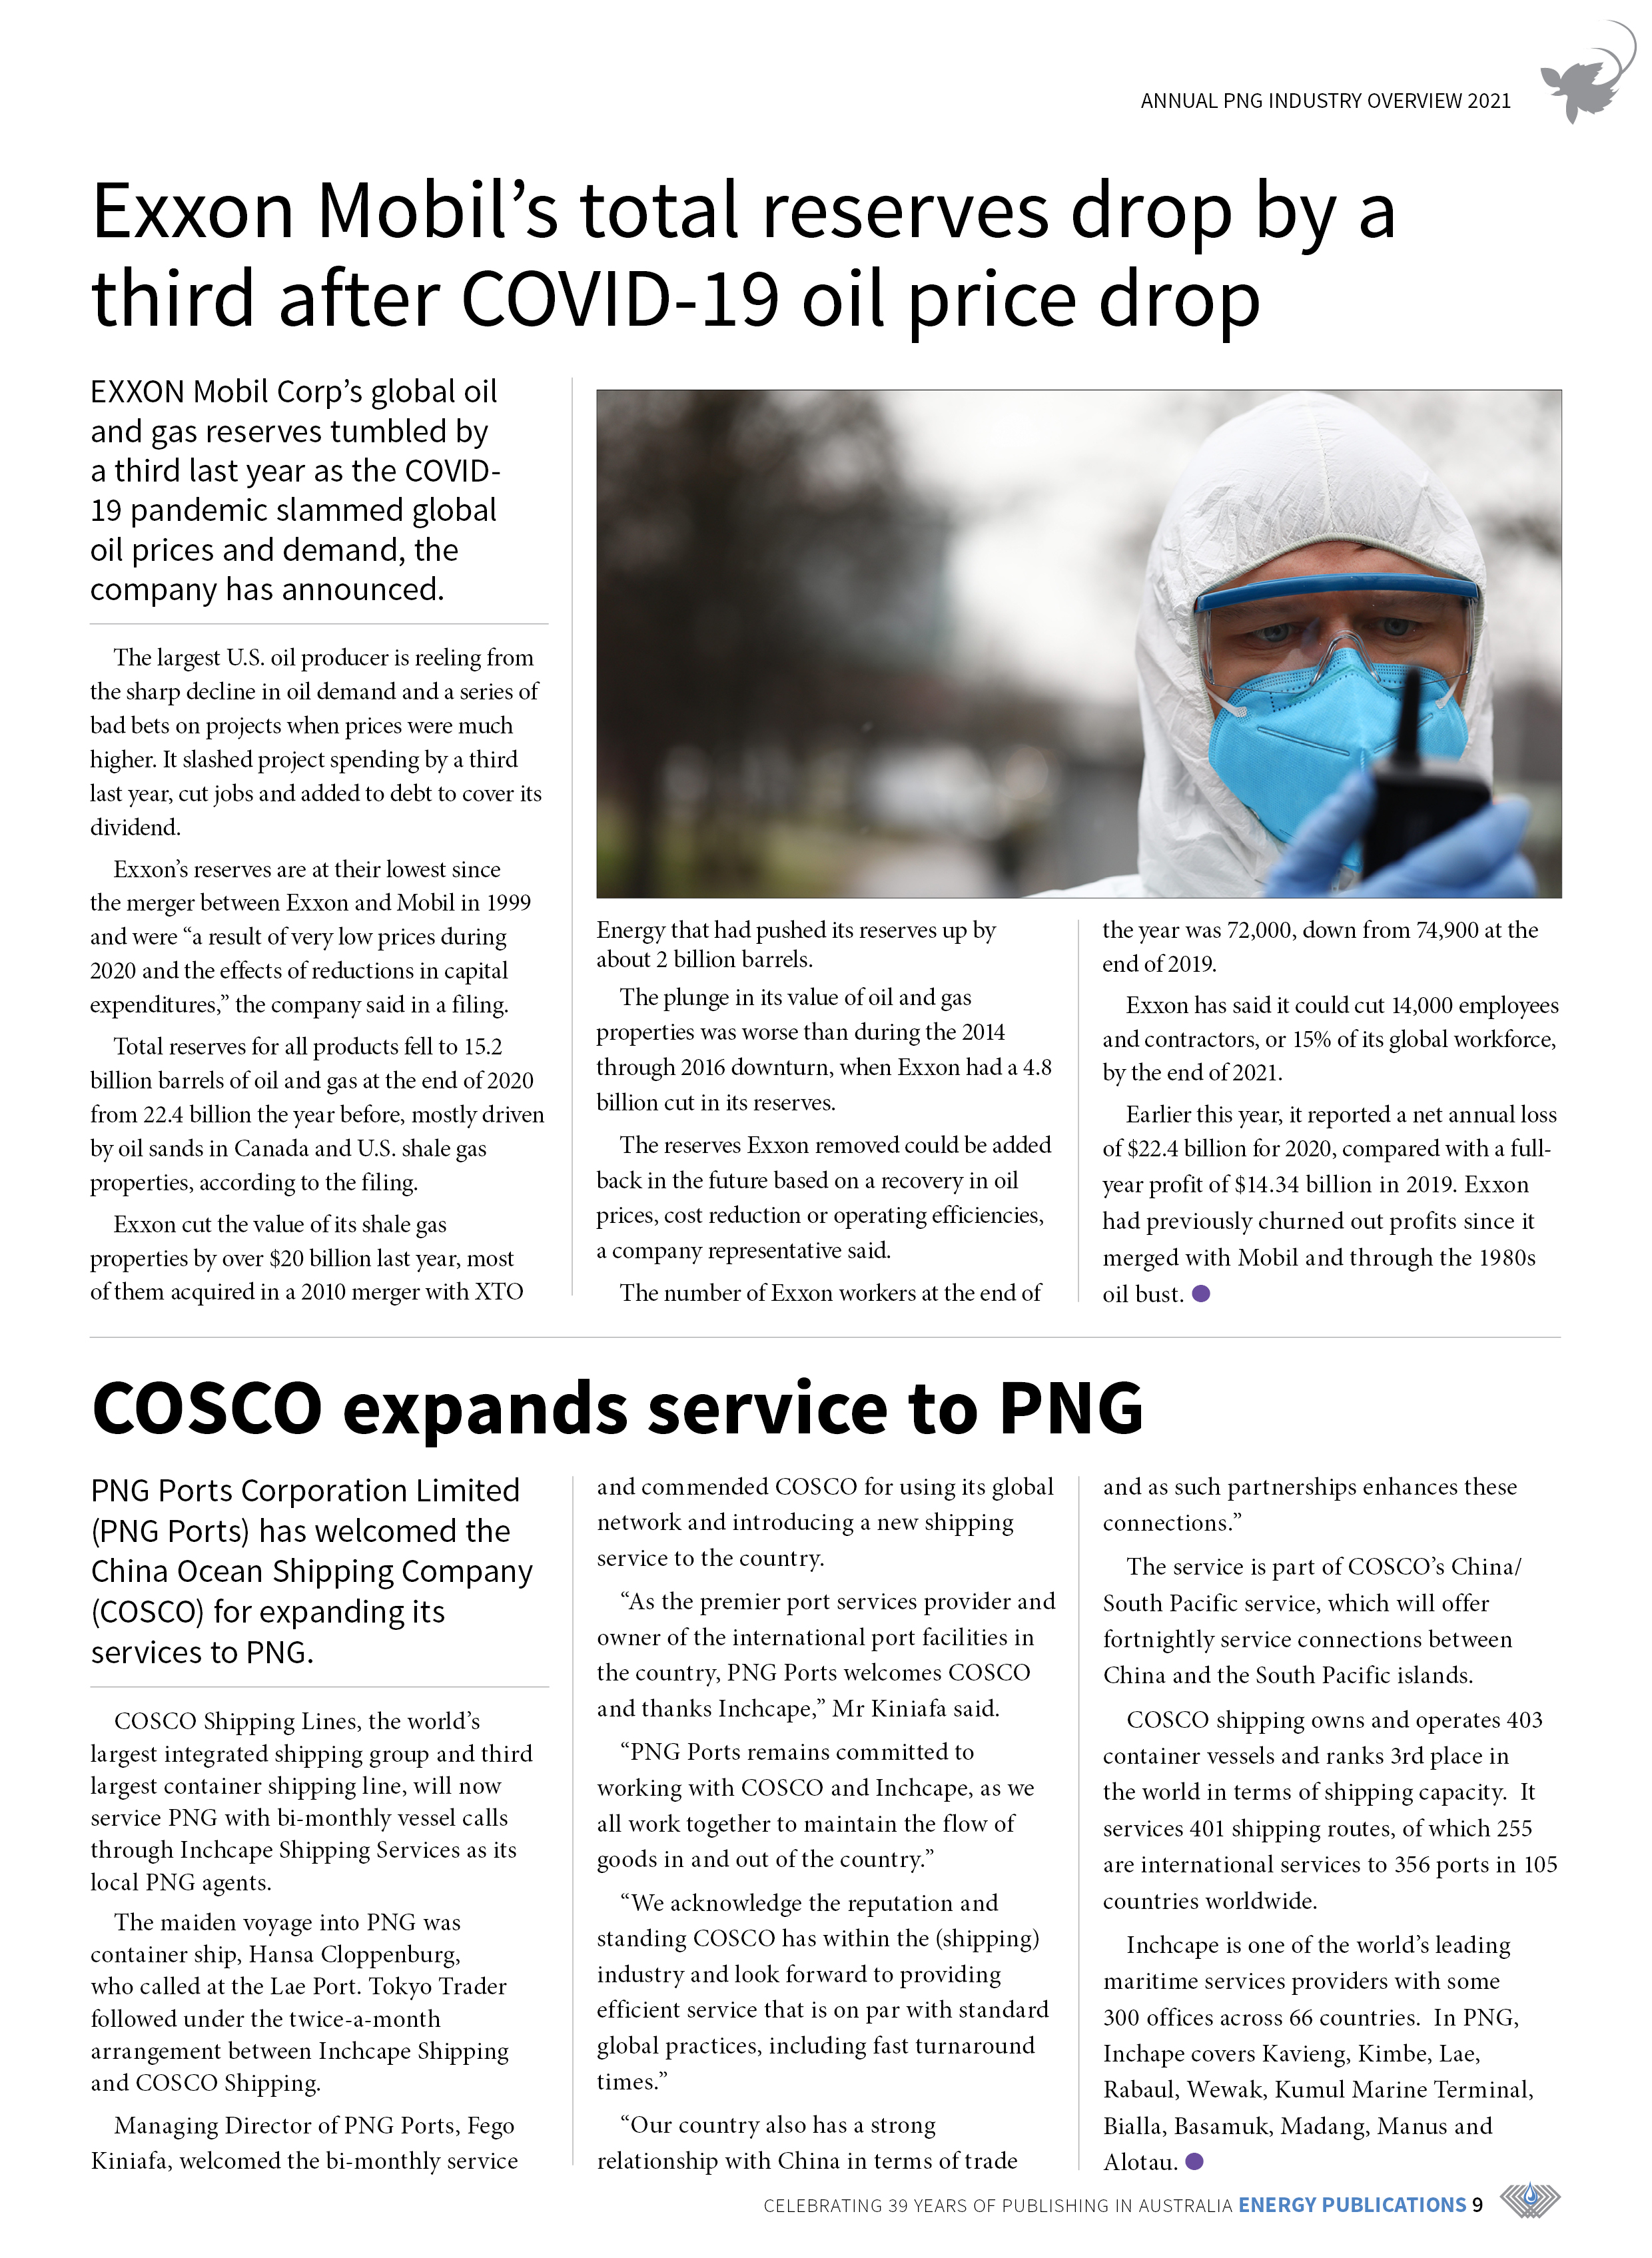 PNG Annual Industry Overview 2021 – Page 11